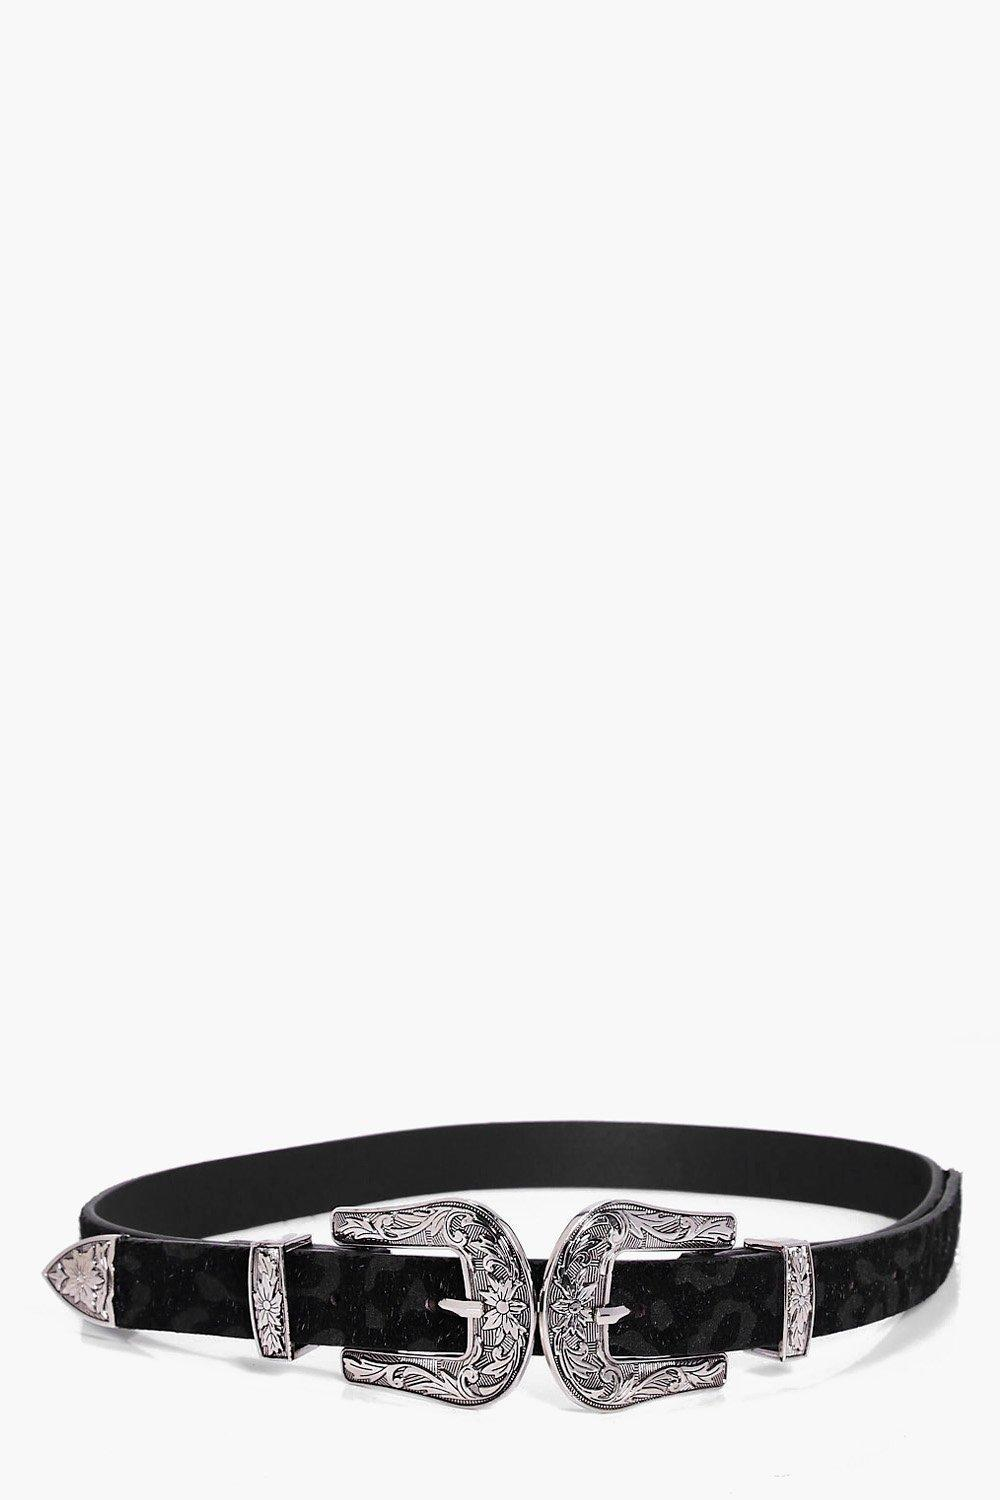 Faux Leopard Double Buckle Western Belt - black -